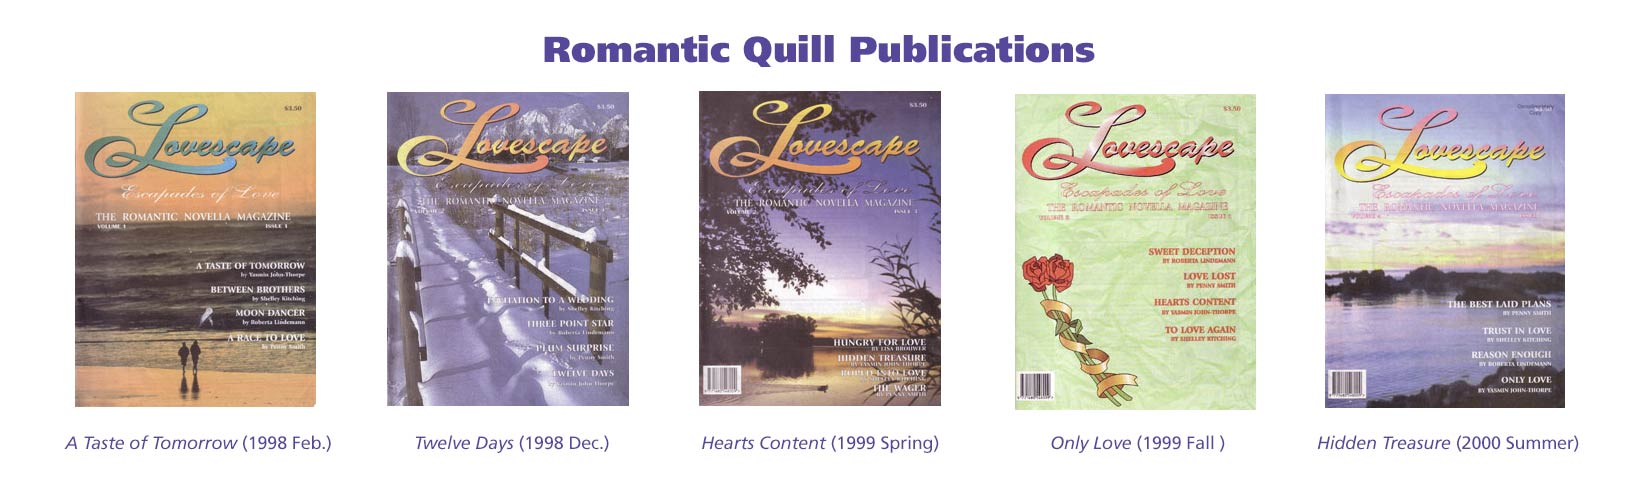 John-Thorpe's stories in Romantic Quill Publications